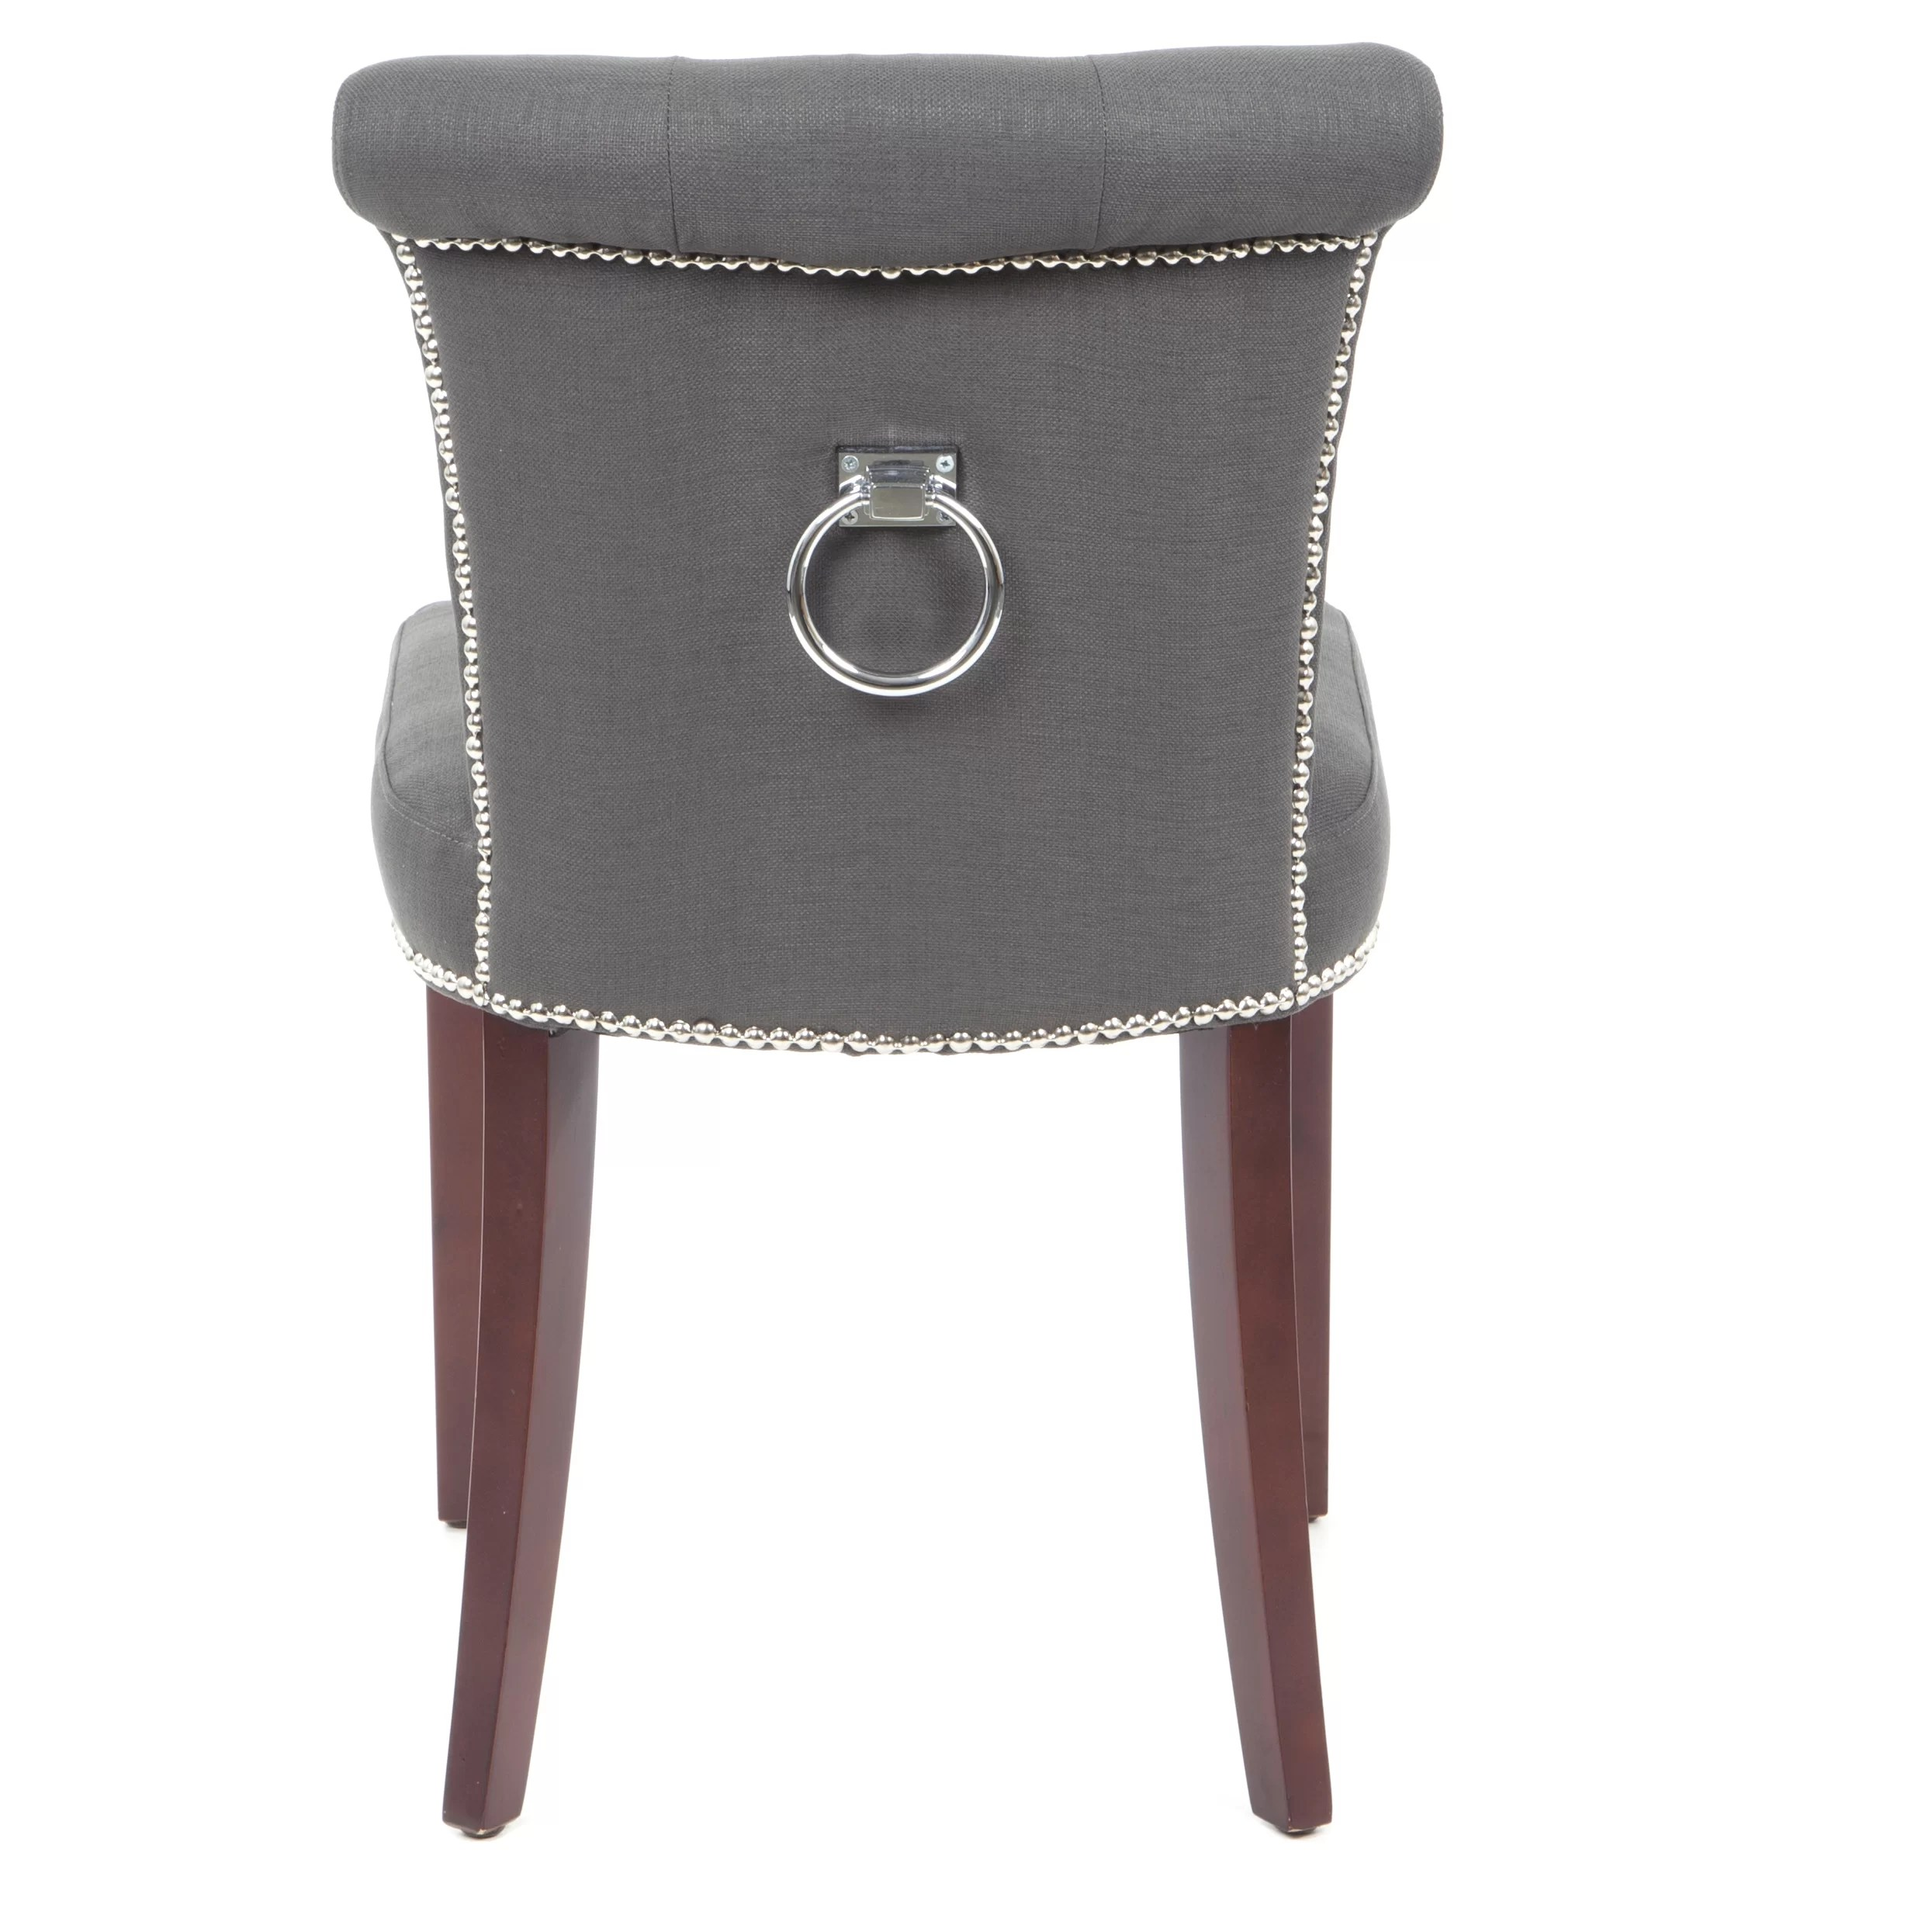 safavieh sinclair ring side chair fisher price rocking arion and reviews wayfair